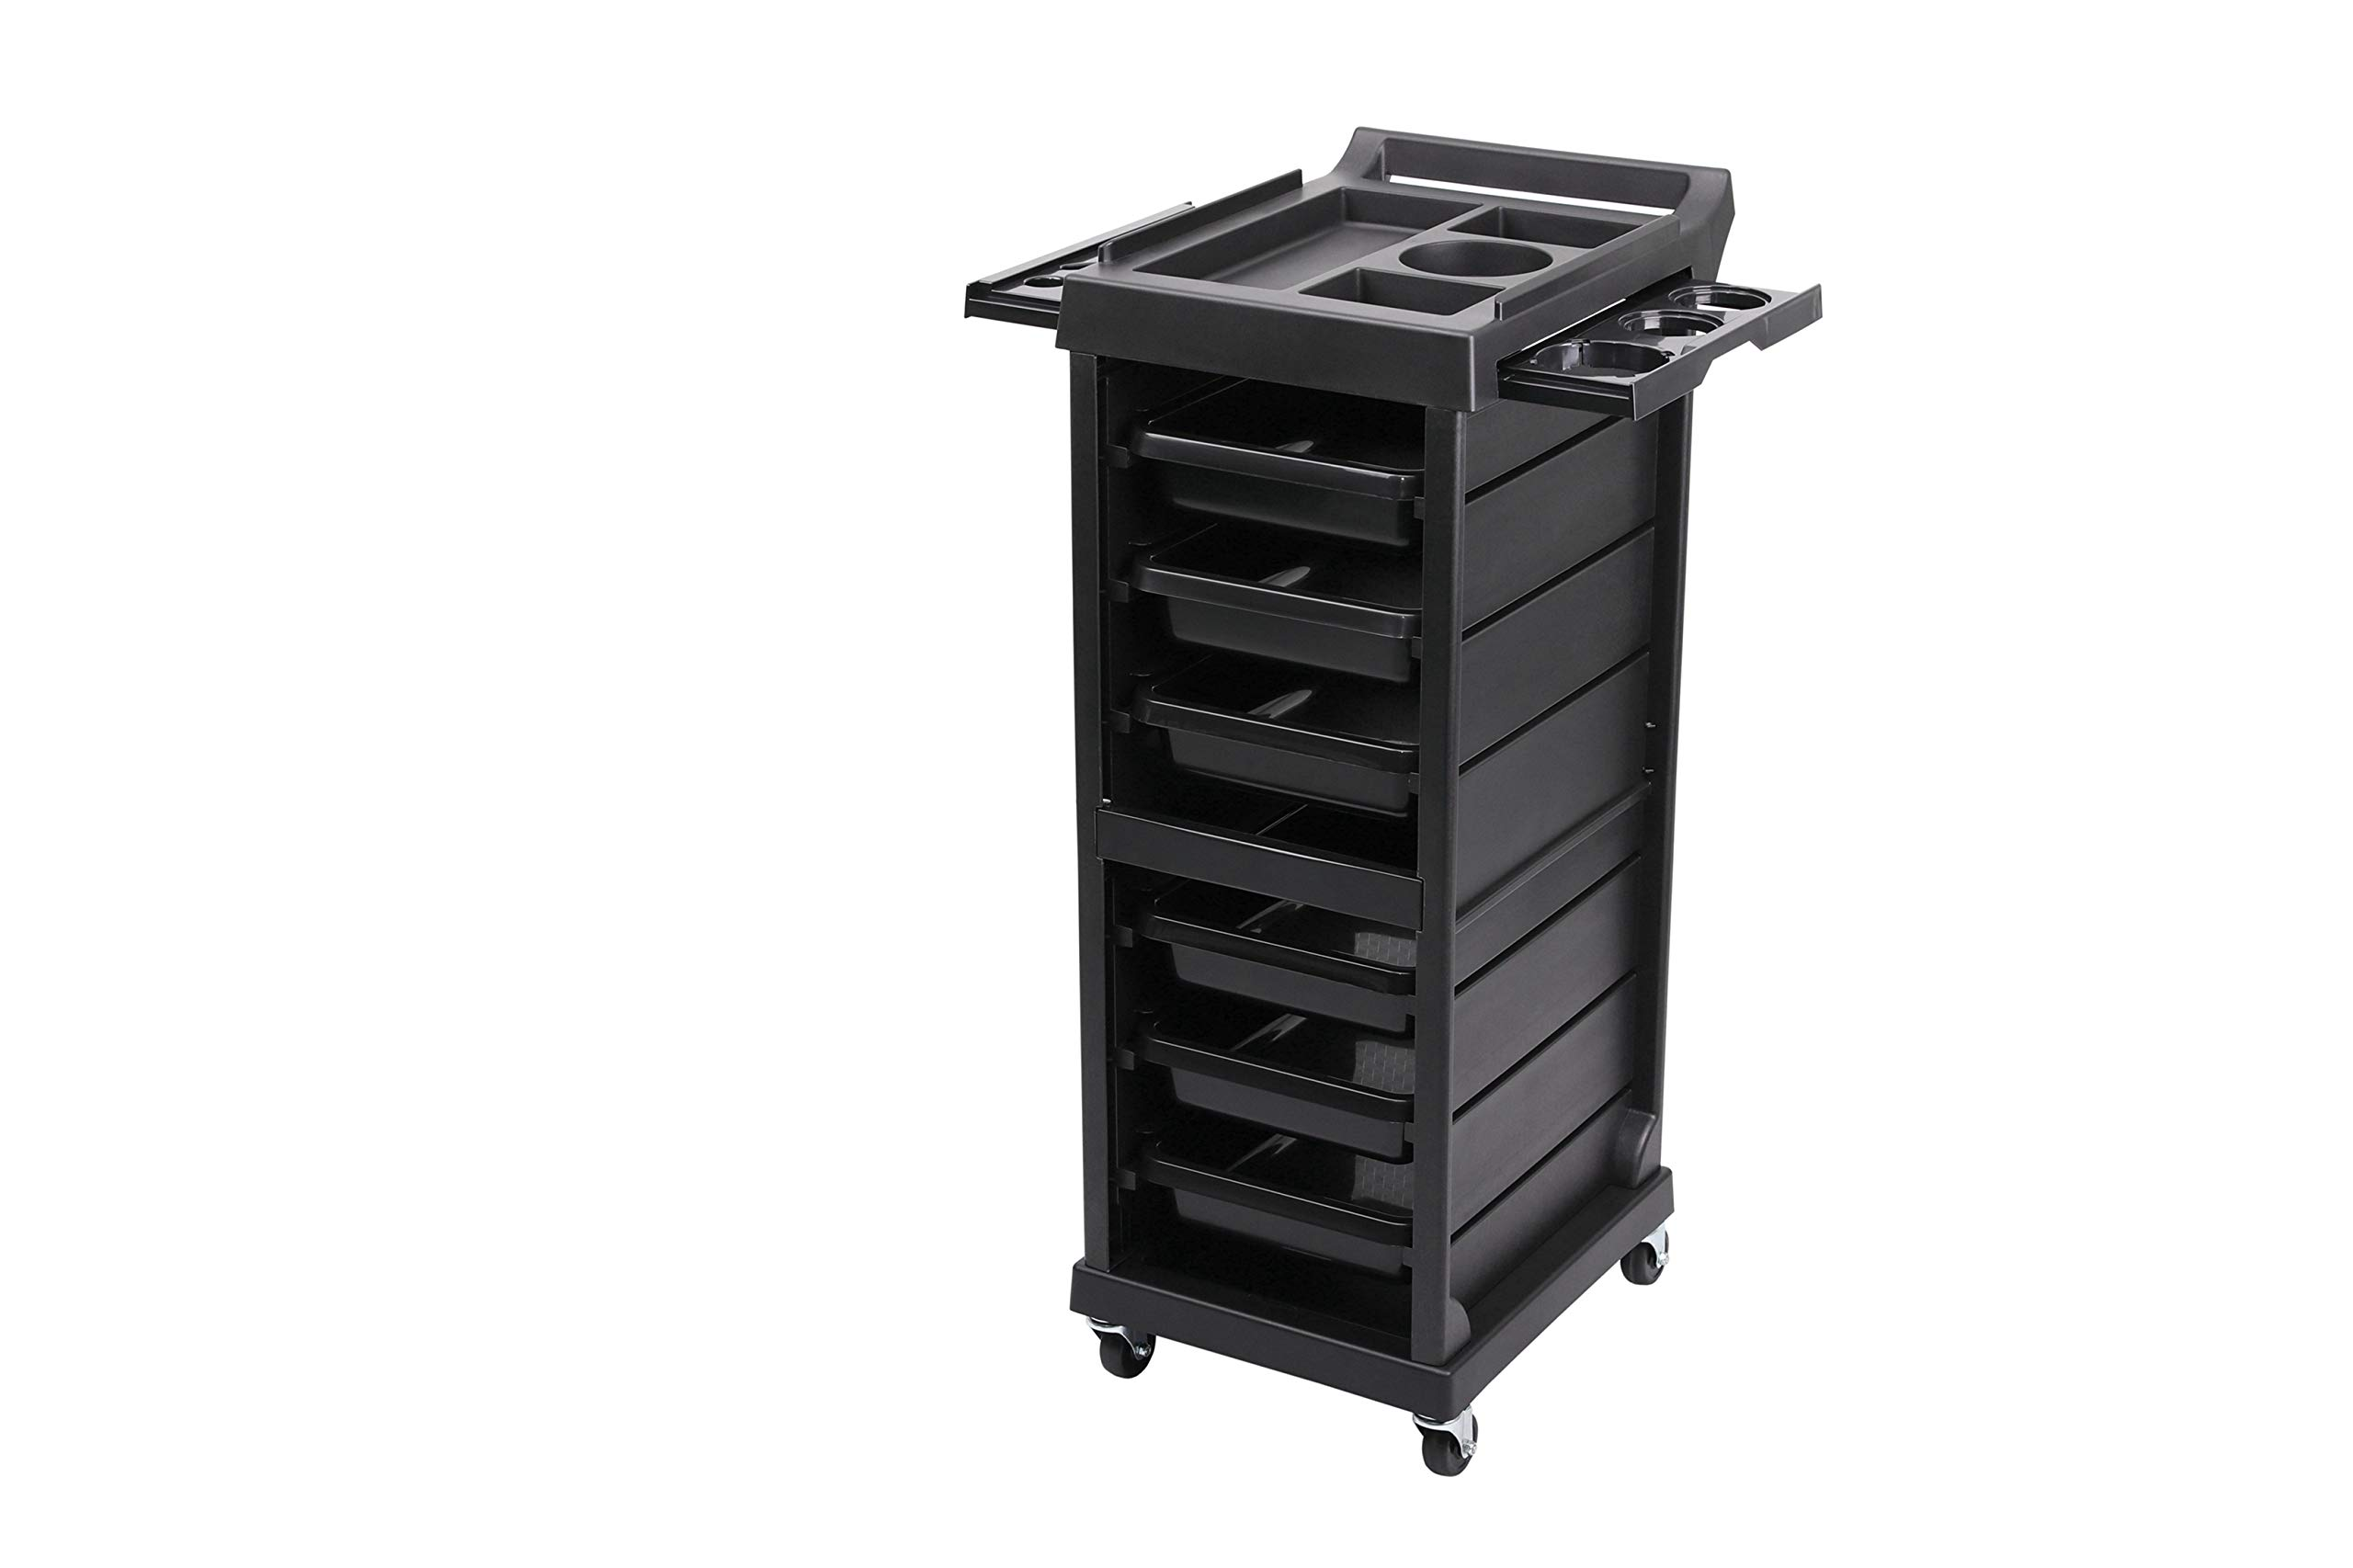 Beauty Style Salon Equipment Trolley with 6 Drawers, Rolling Wheels for Beauty Hairdressing Storage Cart Black